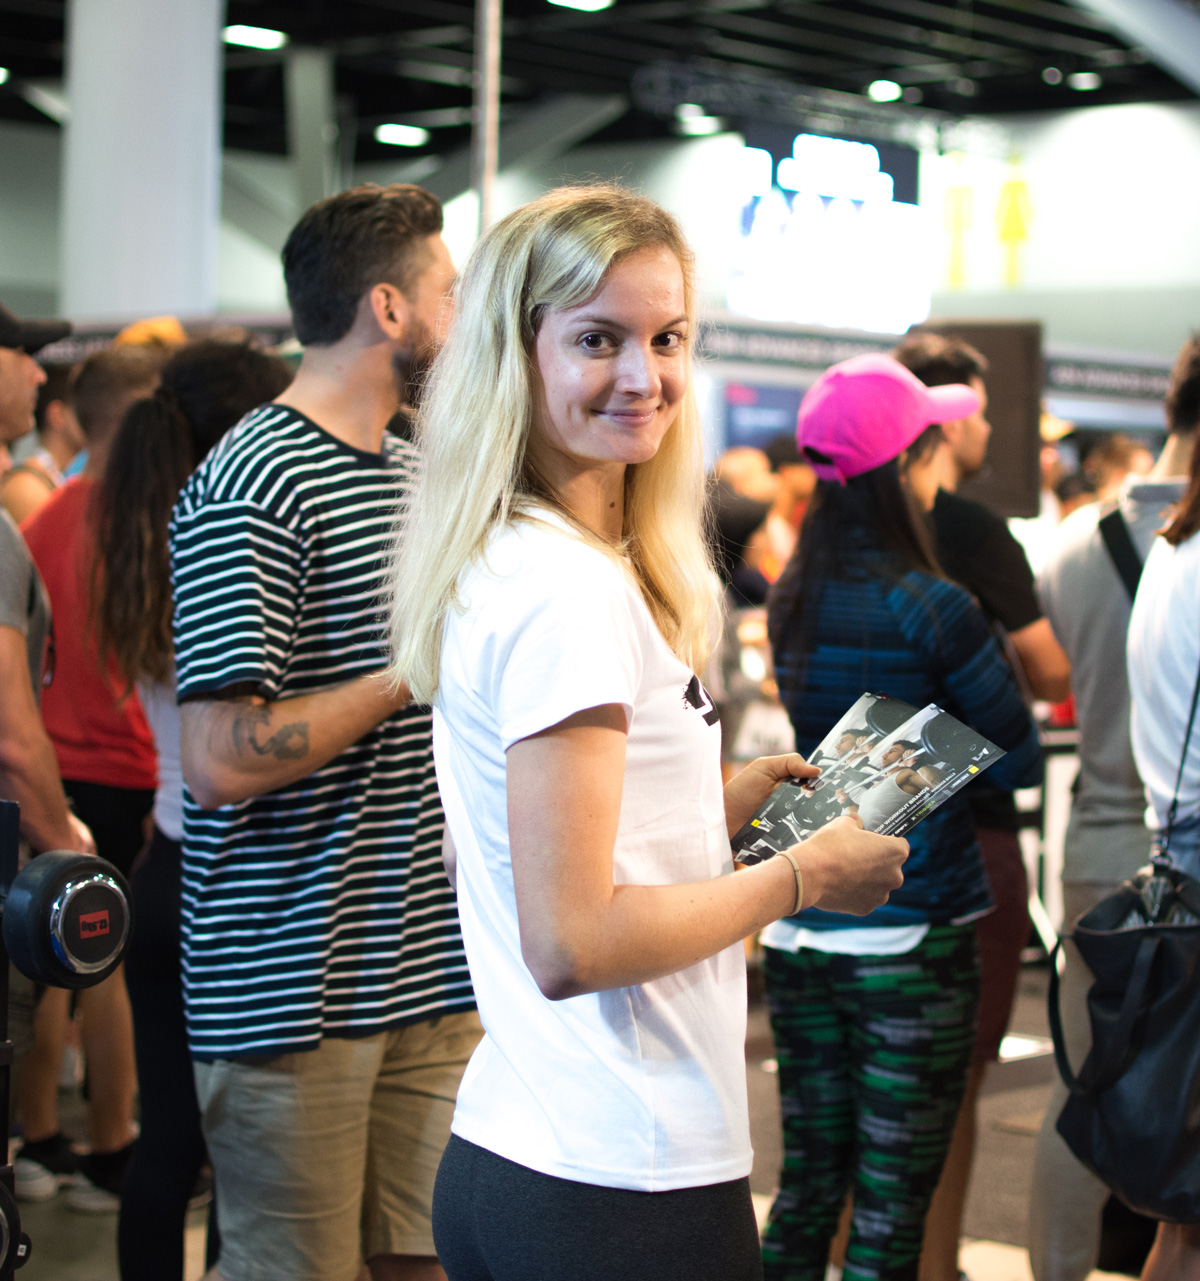 A smiling brand ambassador distributing flyers to people attending an event